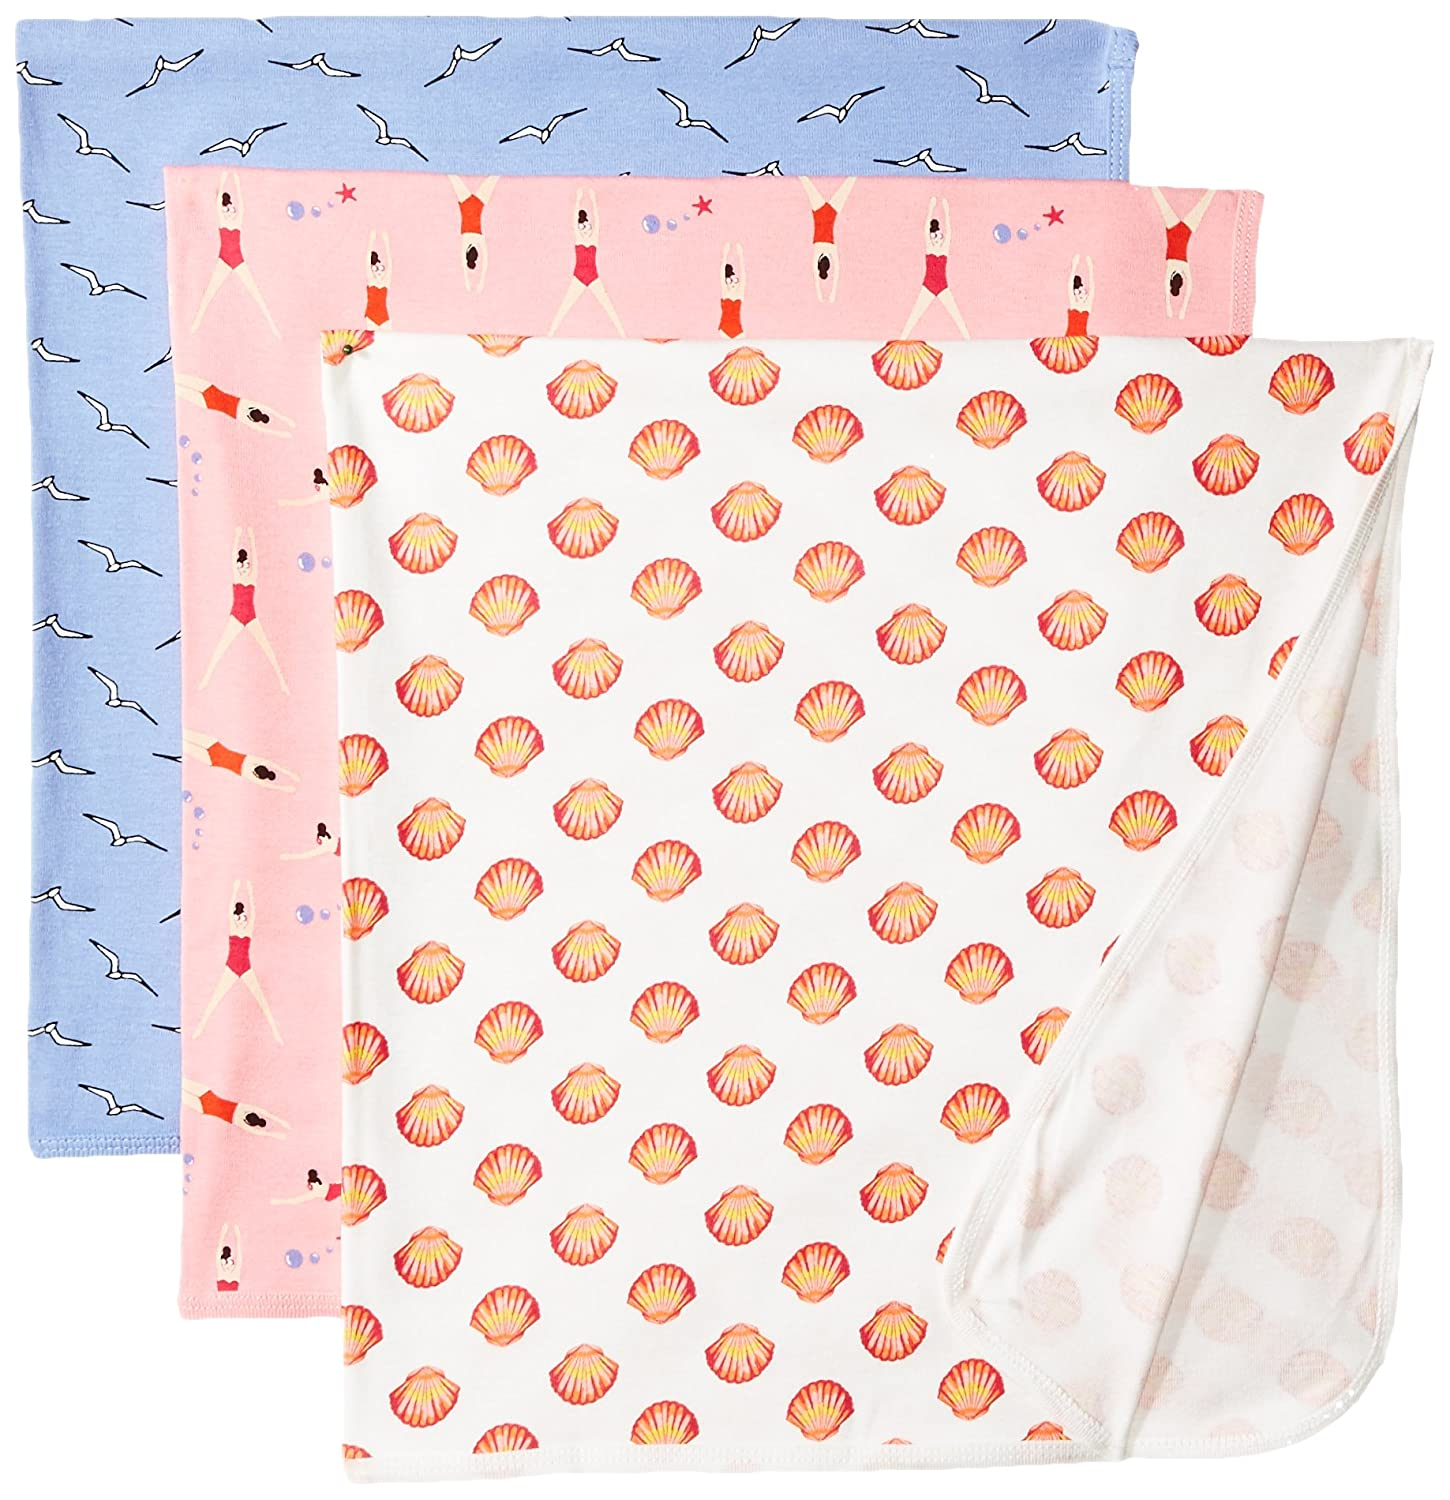 Rosie Pope Baby Girls' 3 Pack Blankets Pink One Size Rosie Pope (Bon Bebe) Children's Apparel RPB104NG-F6WHT